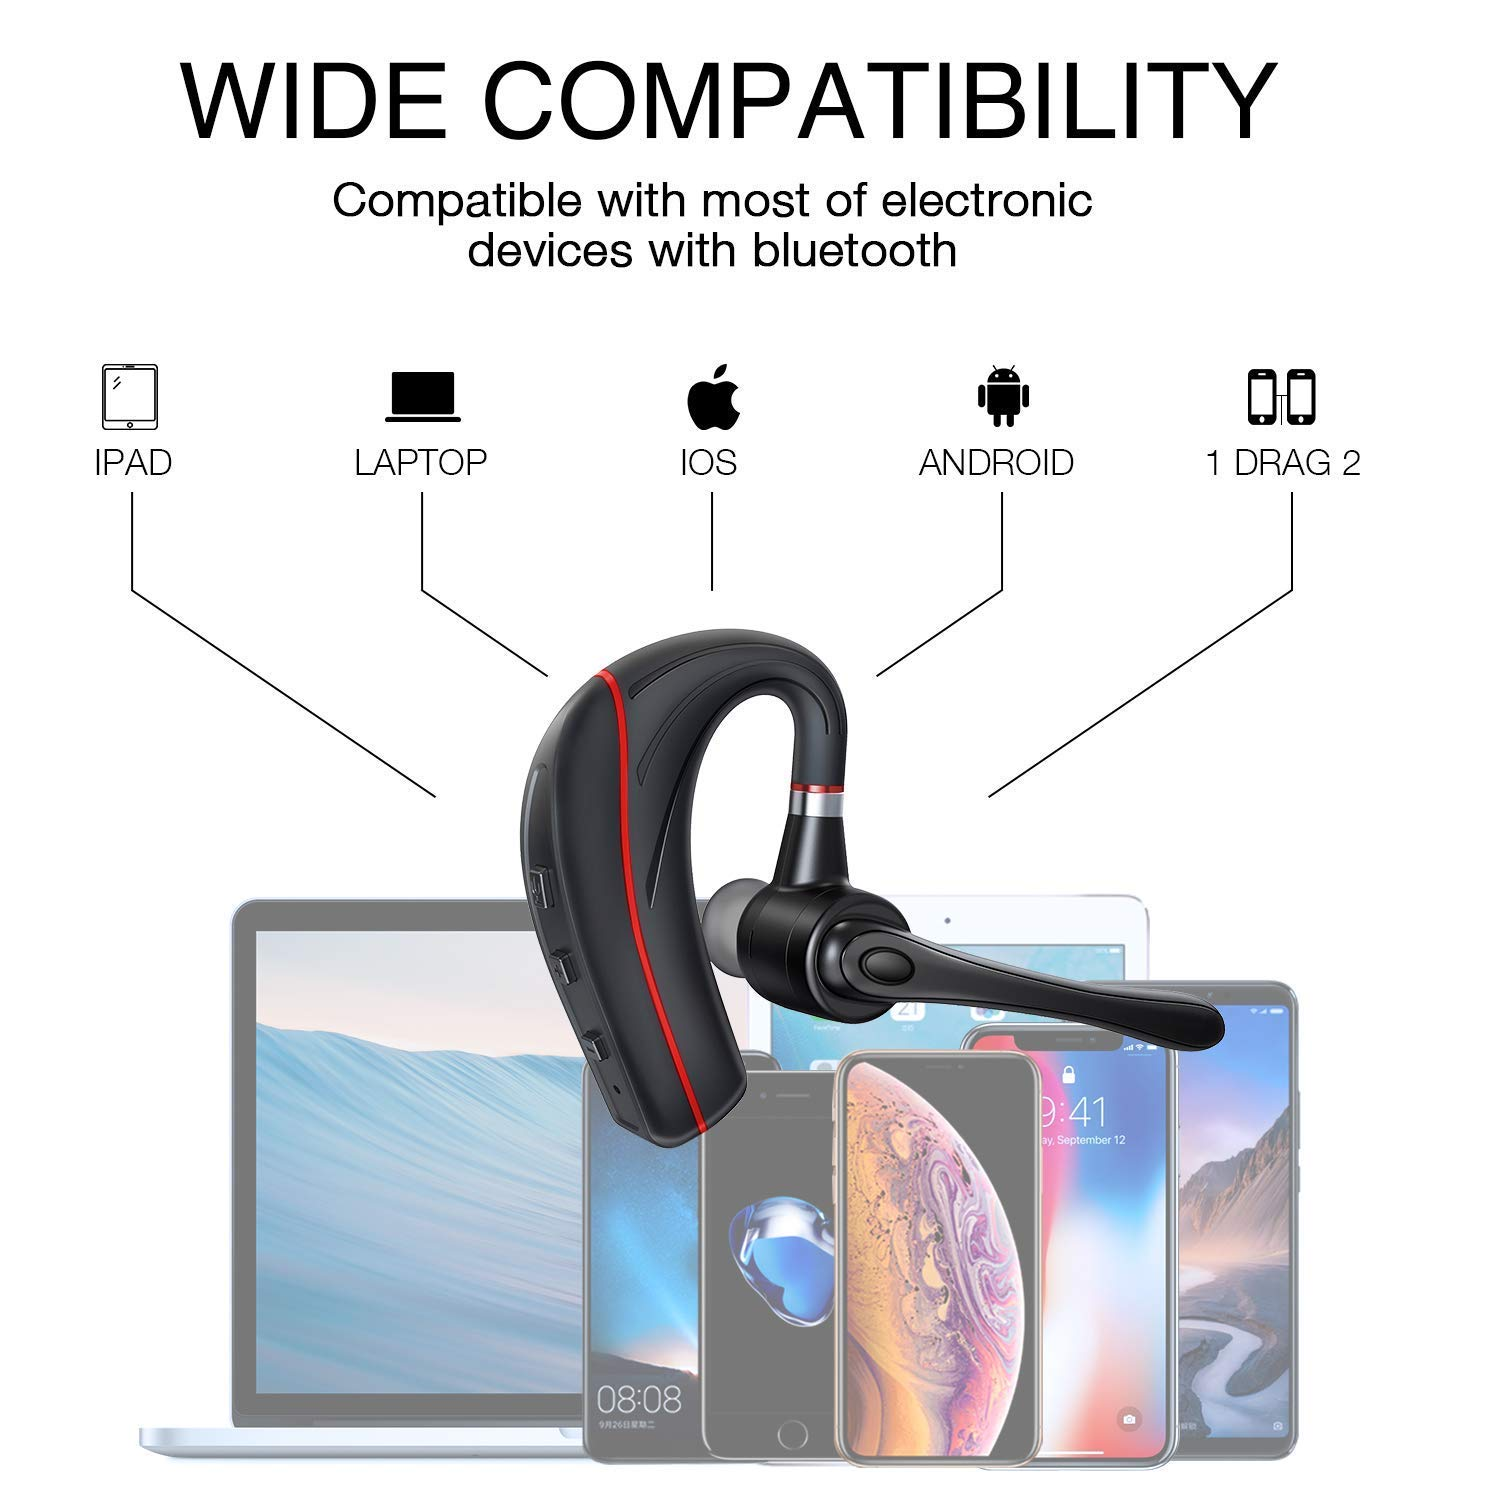 Bluetooth Headset, HandsFree Wireless Earpiece V5.0 with Mic for Business/Office/Driving Call [New Version] by HonShoop (Image #5)